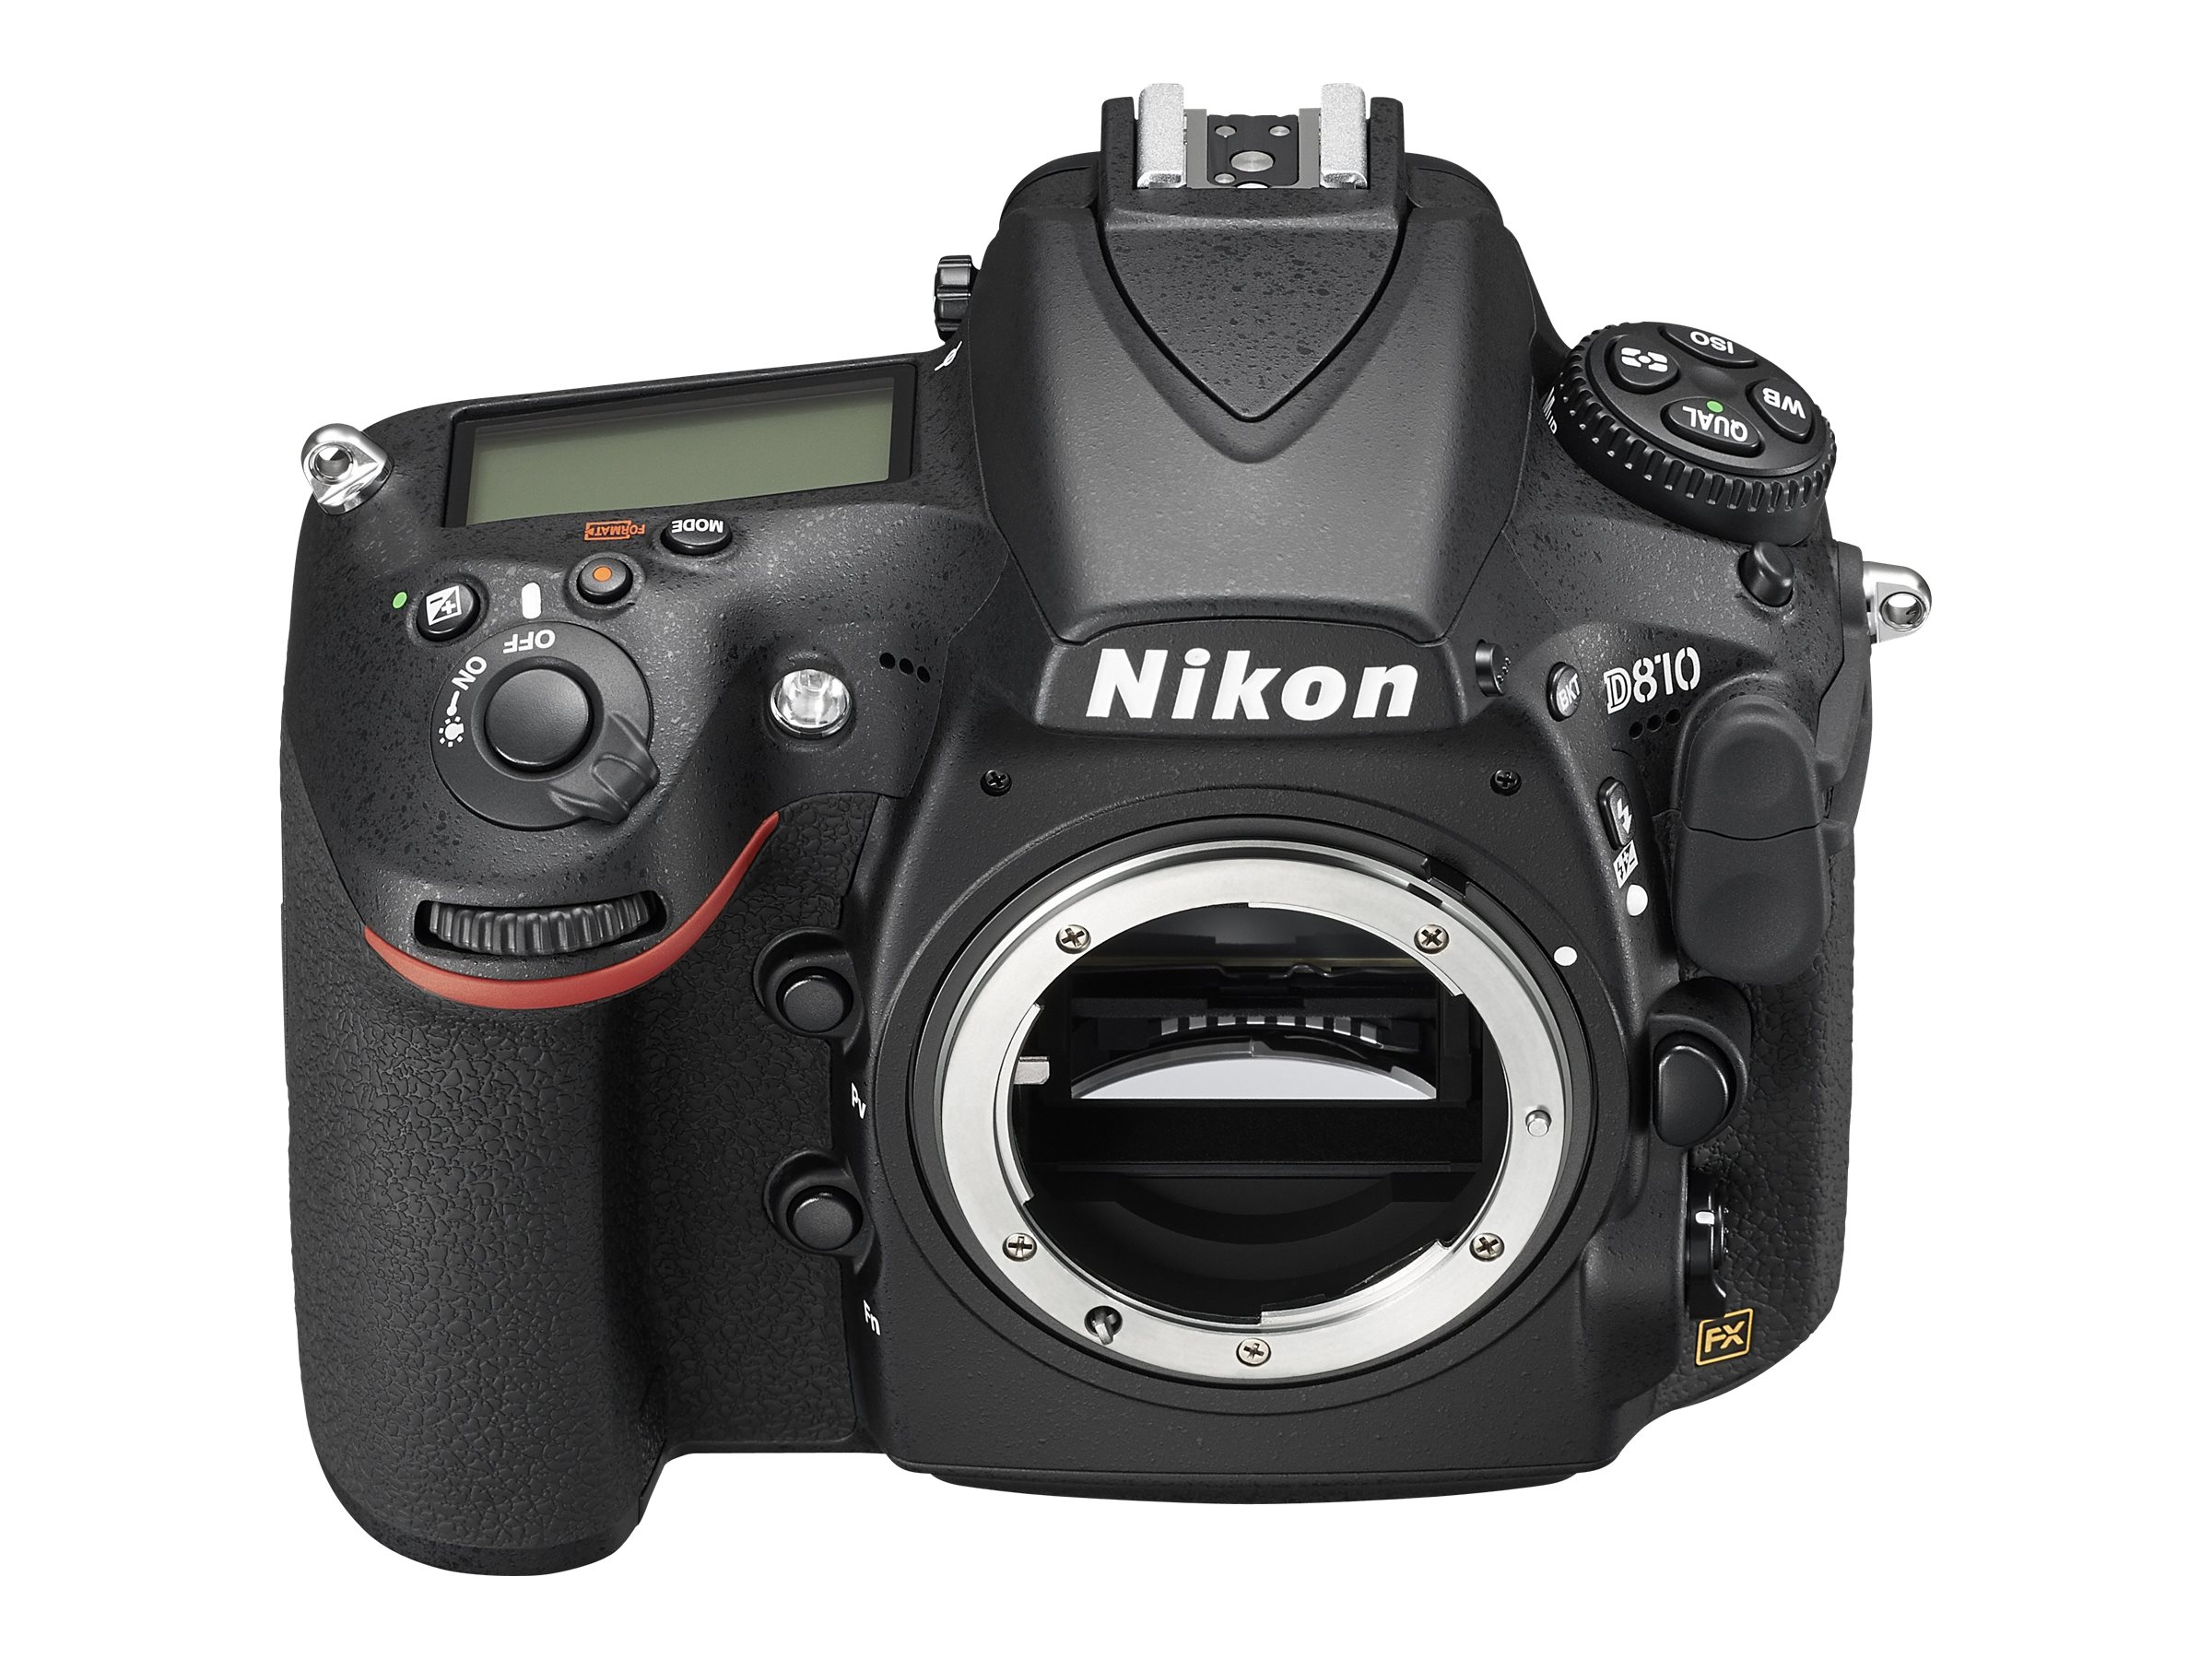 Nikon D810 DSLR Camera, Black (Body Only), 1542, 17994996, Cameras - Digital - SLR